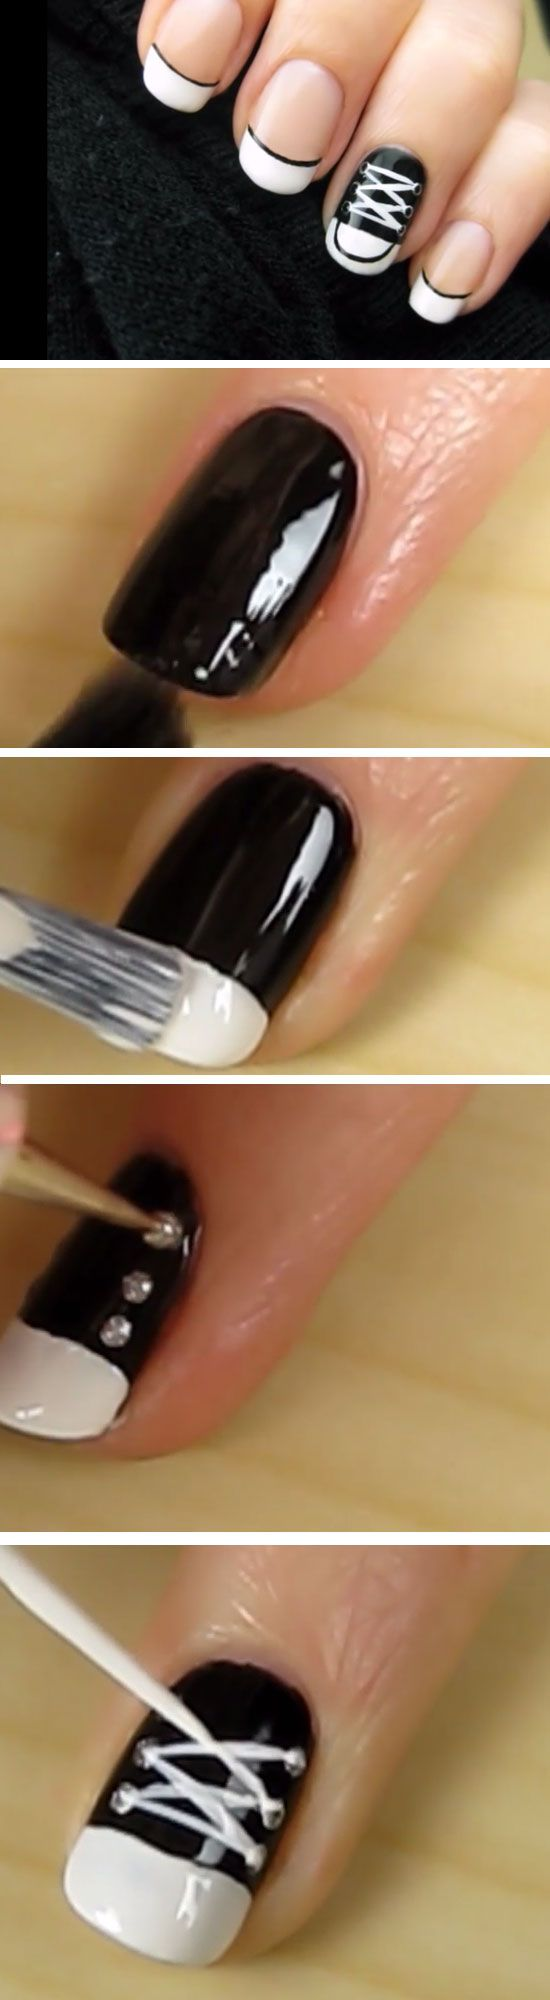 1023 best Nails images on Pinterest | Nail designs, Make up and Art ...